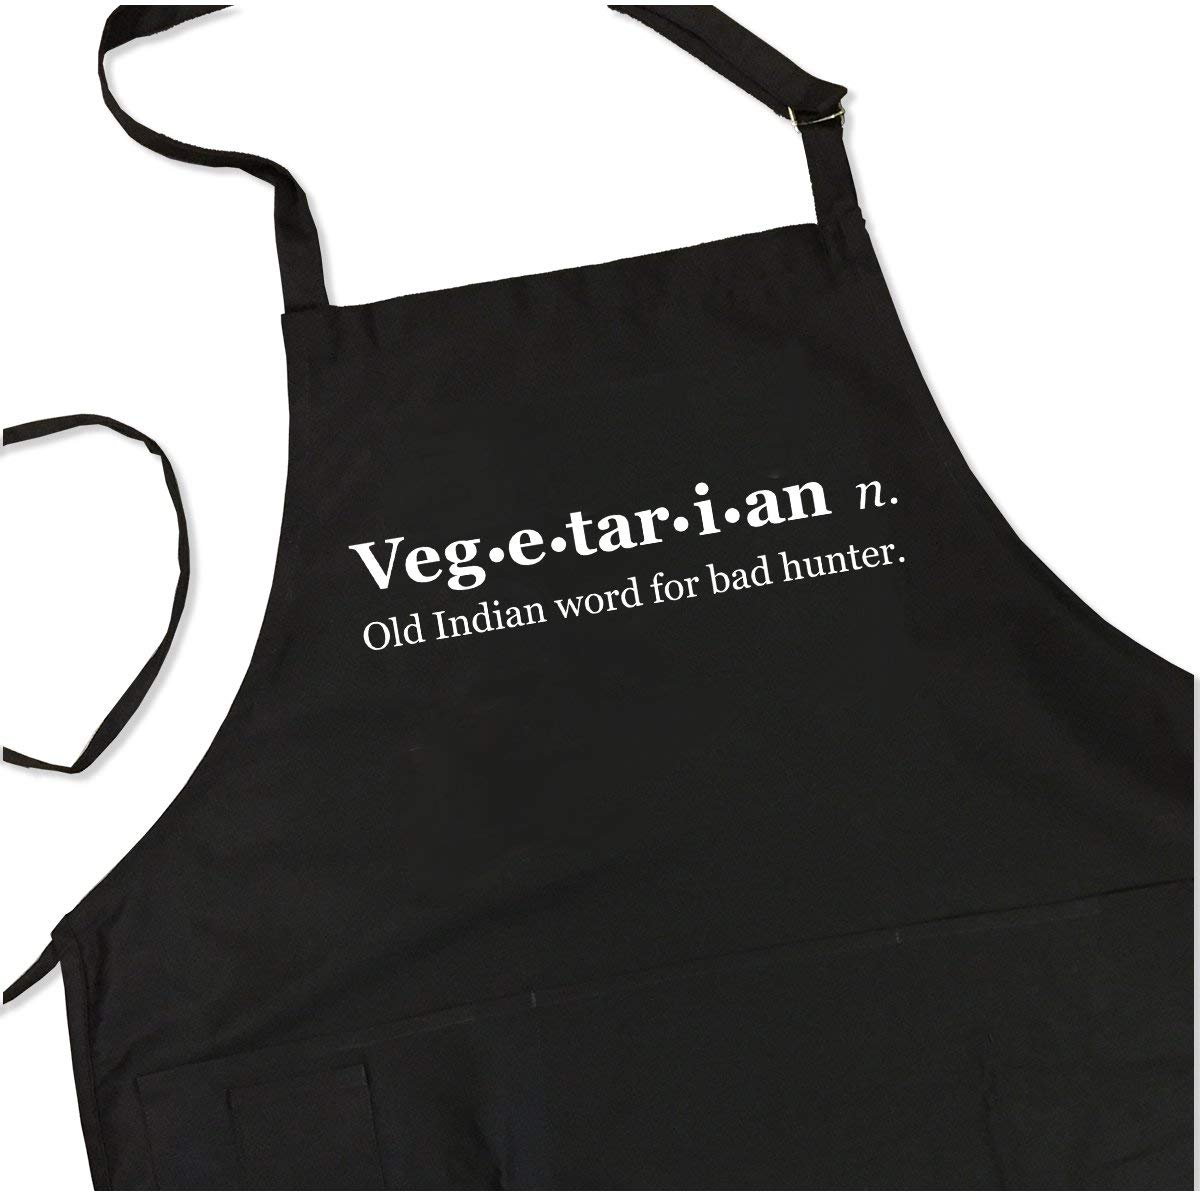 Funny Vegetarian Apron - Old Indian Word for Bad Hunter - BBQ Apron for Dad - 1 Size Fits All Chef Quality Poly/Cotton 4 Utility Pockets, Adjustable Neck and Extra Long Waist Ties by ApronMen (Image #1)